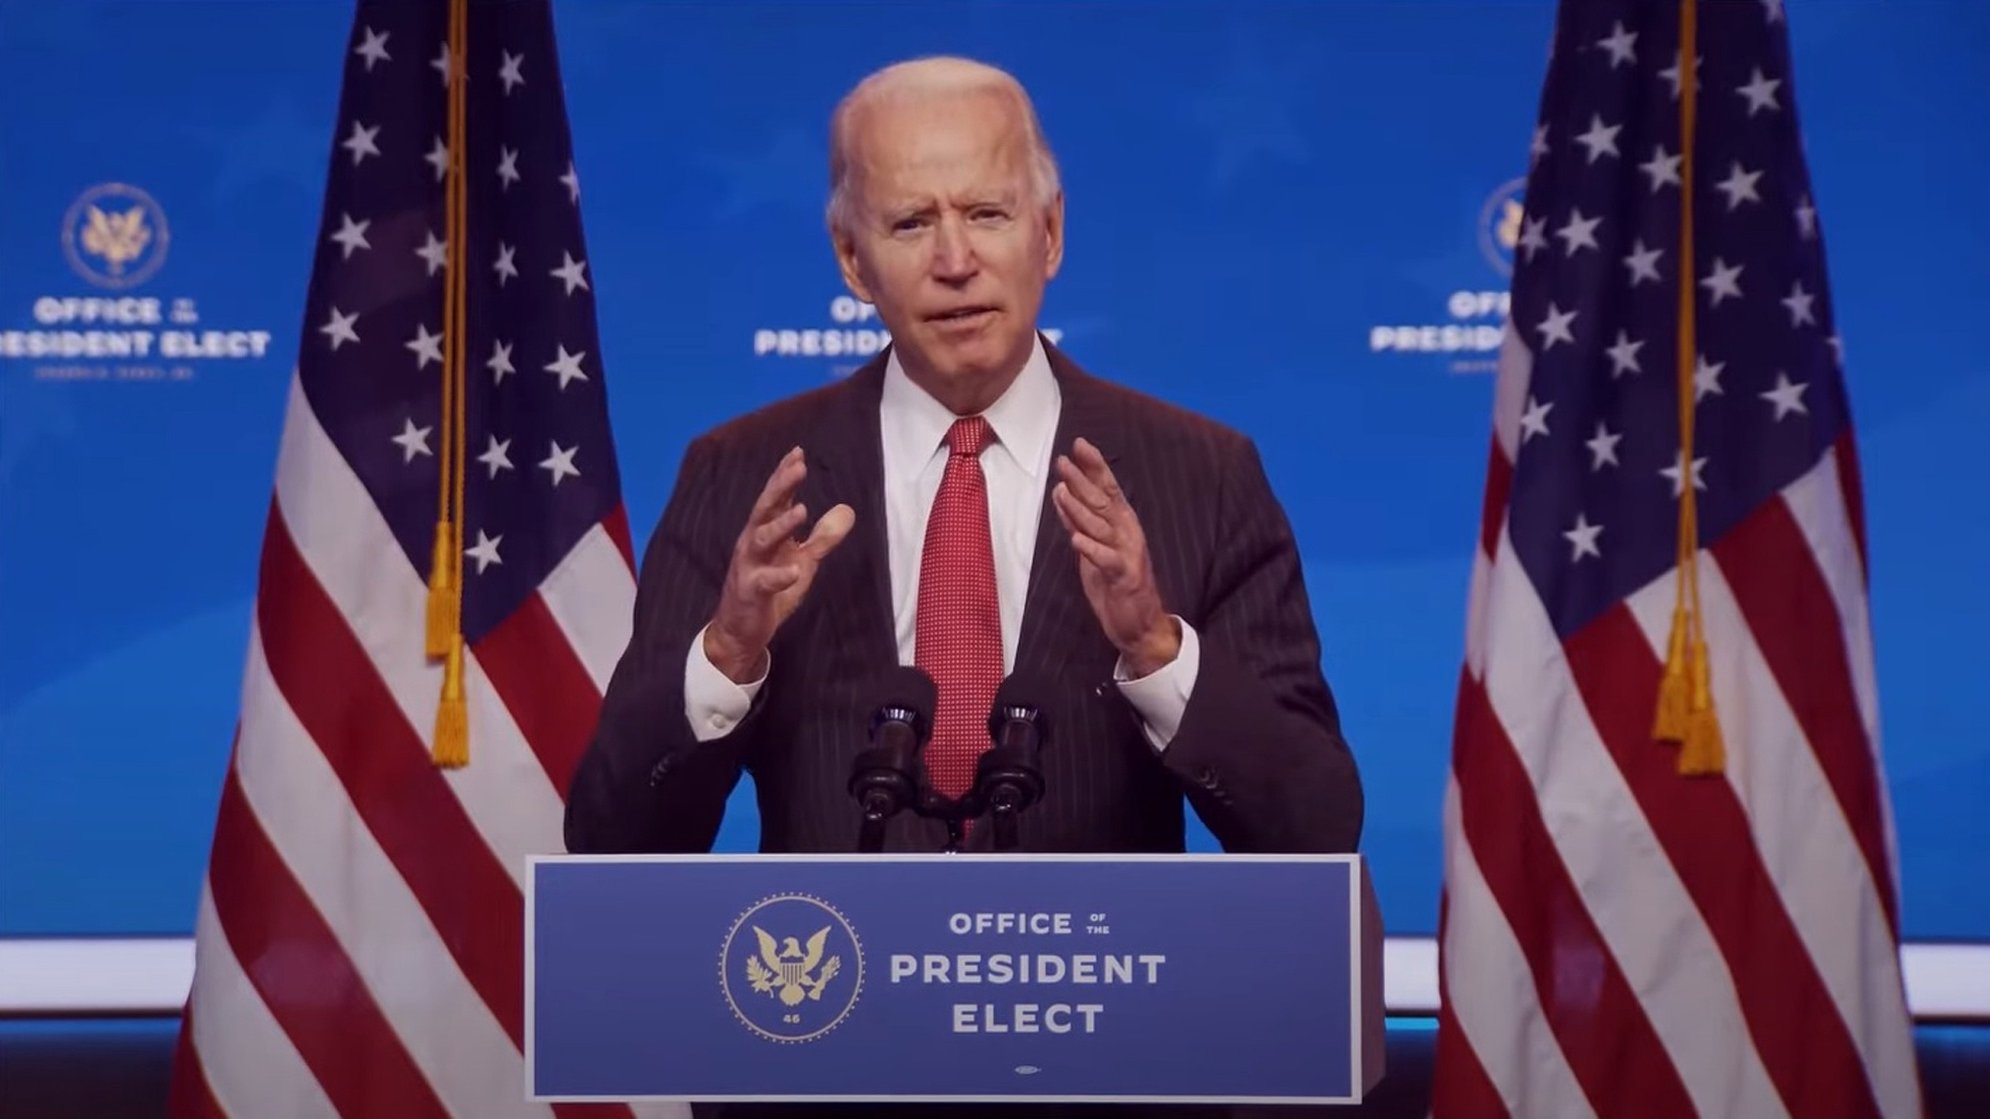 epa08830999 A frame grab from a handout video released by the Office of the President Elect shows US President-Elect Joseph R. Biden addressing the media during a press conference in Wilmington, Delaware, USA, 19 November 2020 (issued 20 November 2020). Georgia state authorities confirmed 19 November US President-elect Joe Biden won the the election in Georgia following a recount. It was the first time the Democrats won a presidential election race in Georgia since 1992 when Bill Clinton was elected.  EPA/OFFICE OF THE PRESIDENT ELECT/HANDOUT BEST QUALITY AVAILABLE HANDOUT EDITORIAL USE ONLY/NO SALES